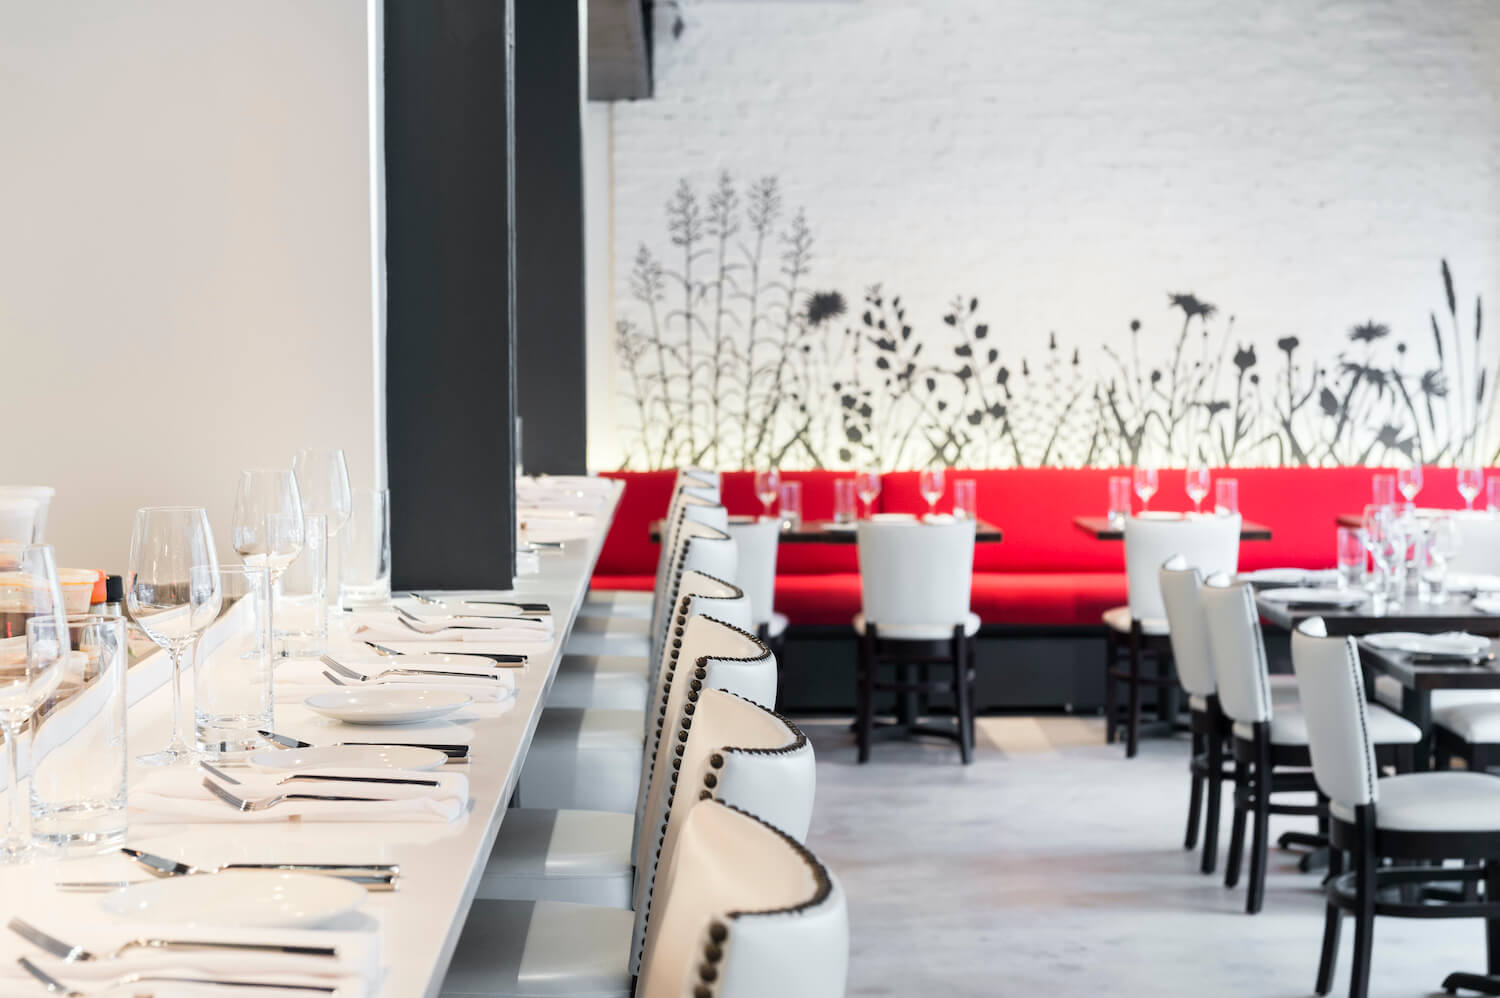 The dining room of Dirt Candy, Amanda Cohen's vegetable-focused restaurant in New York City.